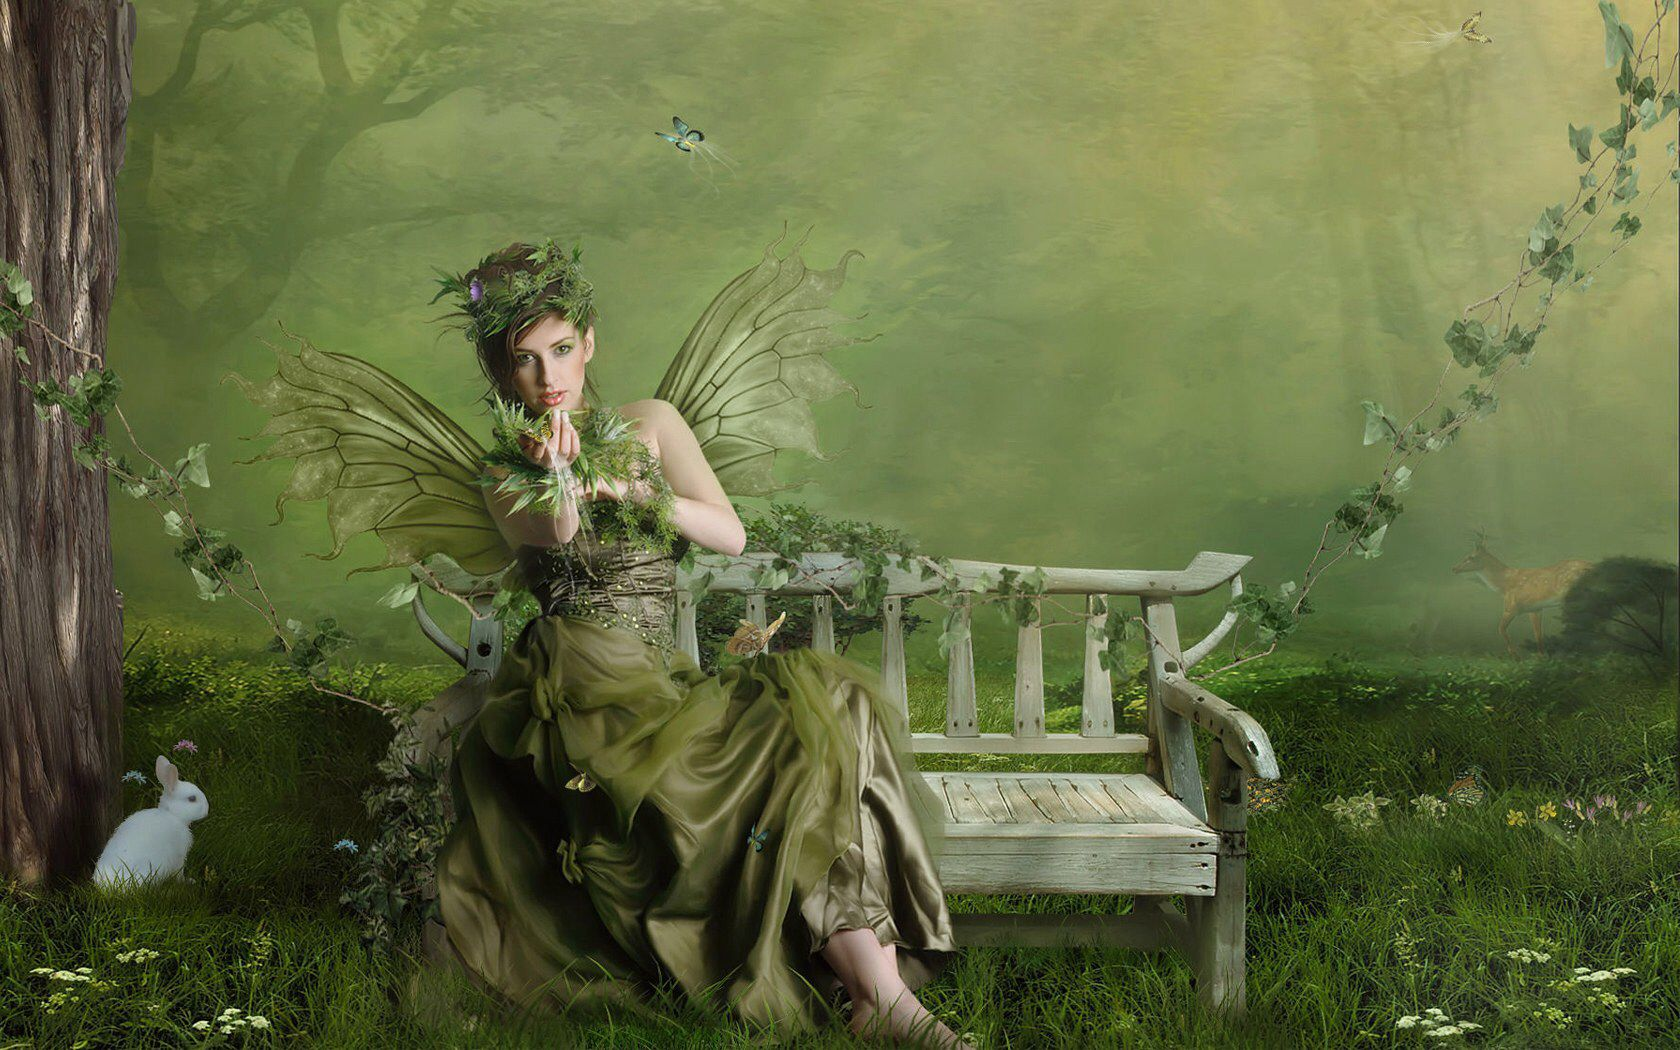 Image from httpdarkpozadiaimageswallpapers24835556fairy nymphs voltagebd Choice Image